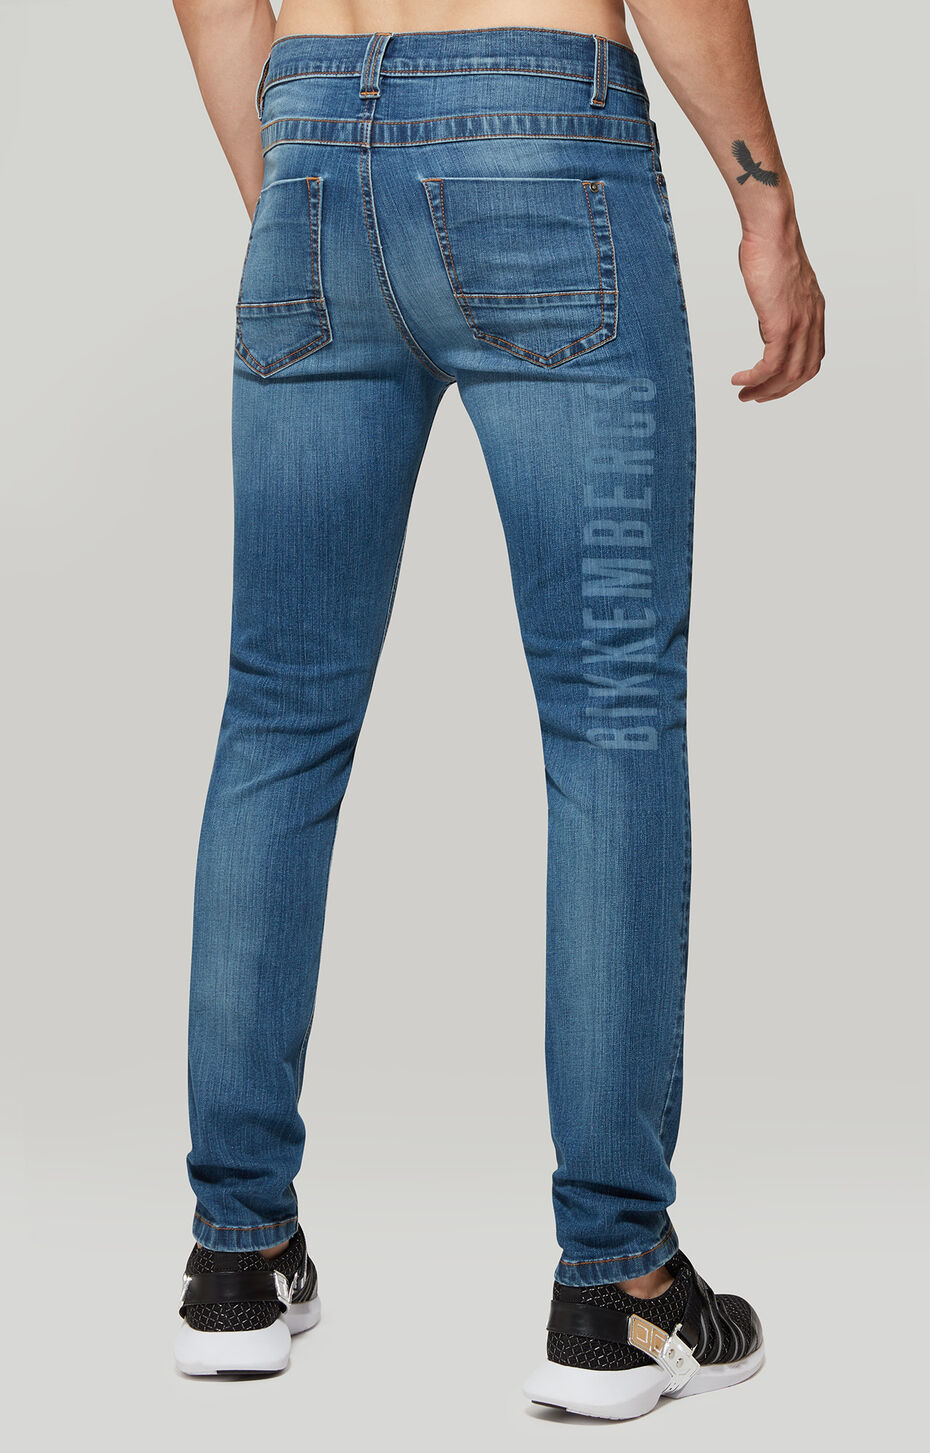 TROUSERS DENIM, Blue Denim, hi-res-1